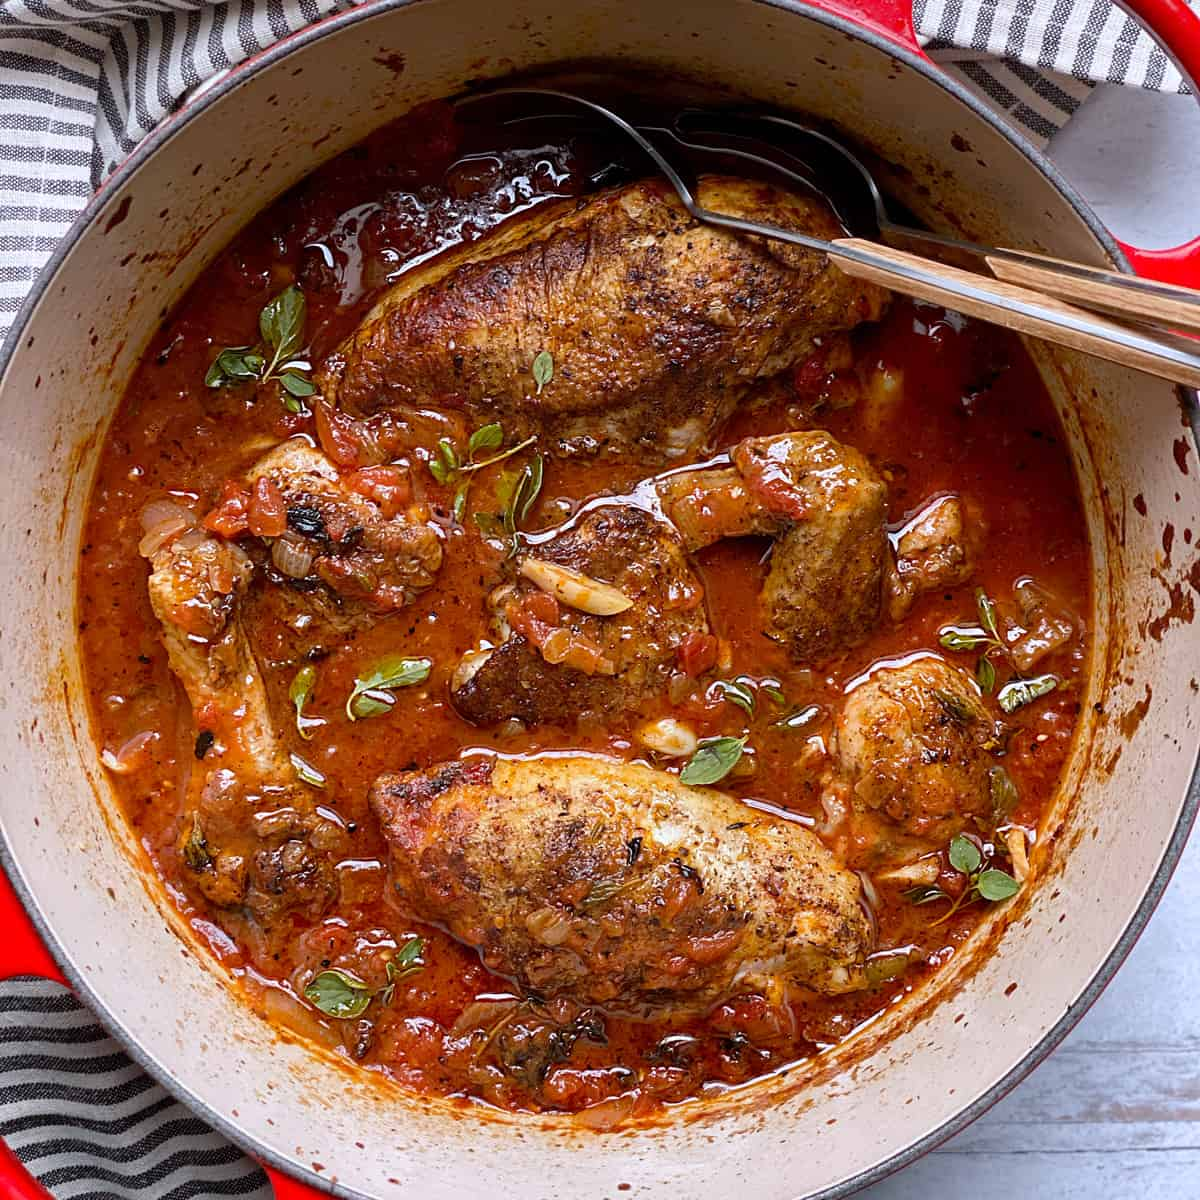 A red dutch oven with chicken in red sauce and two serving spoons.